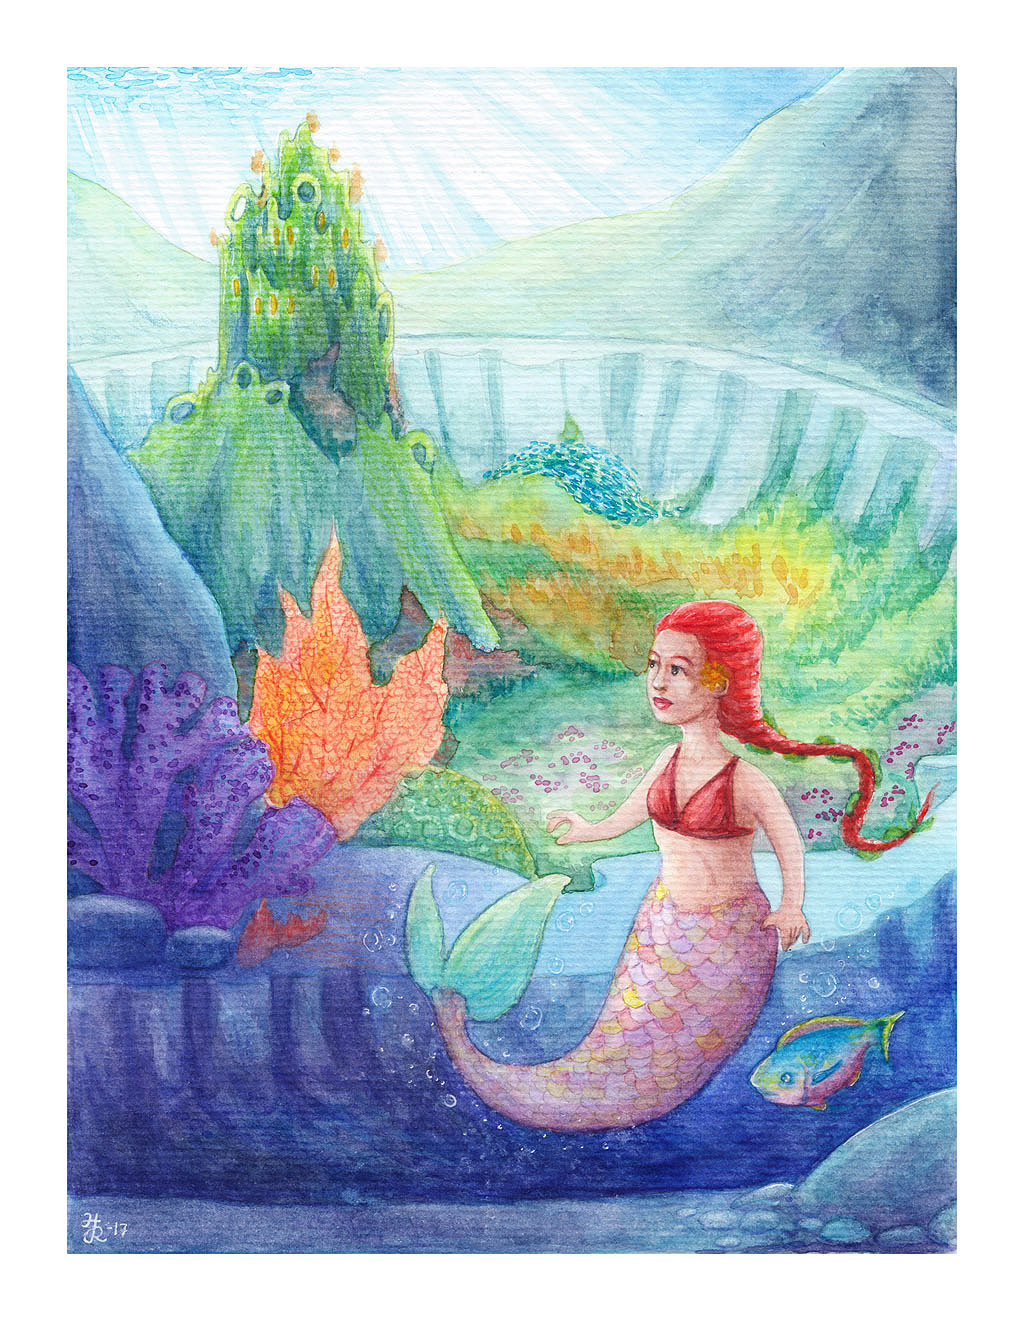 A Little Mermaid